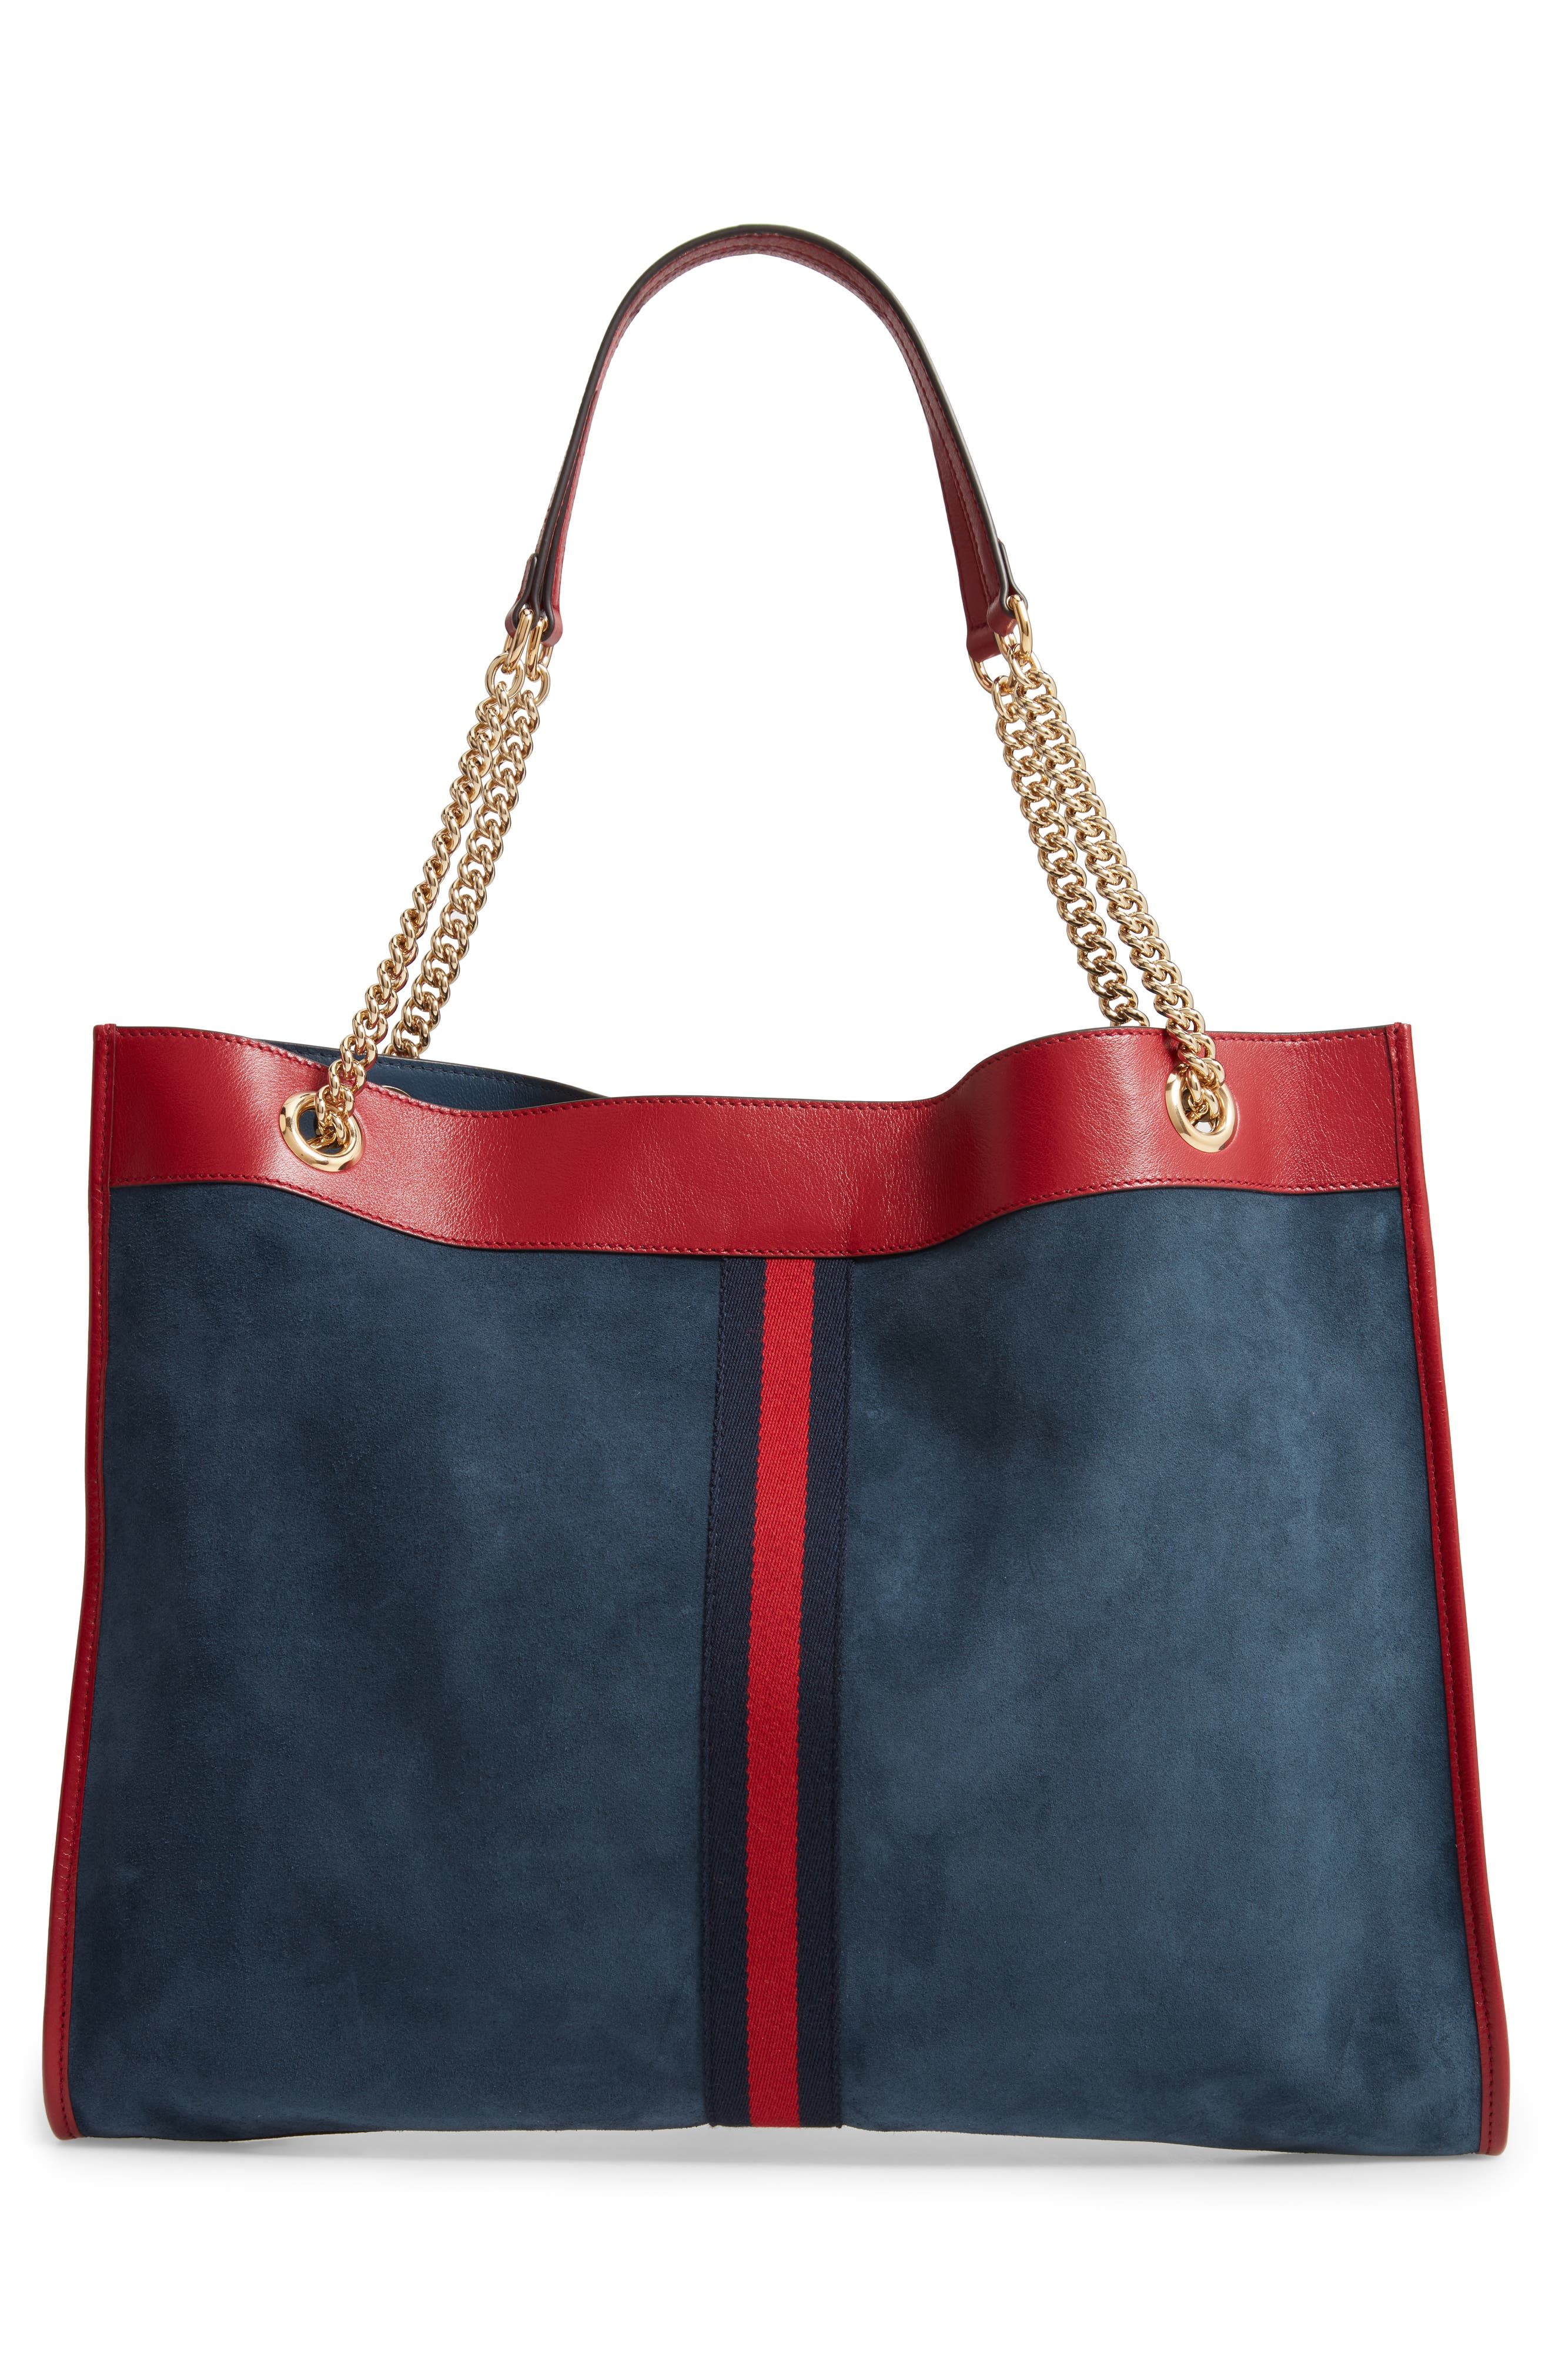 Linea Tiger NY Yankees Suede & Leather Tote,                             Alternate thumbnail 3, color,                             NEW BLUE/ CERISE/ BLUE RED